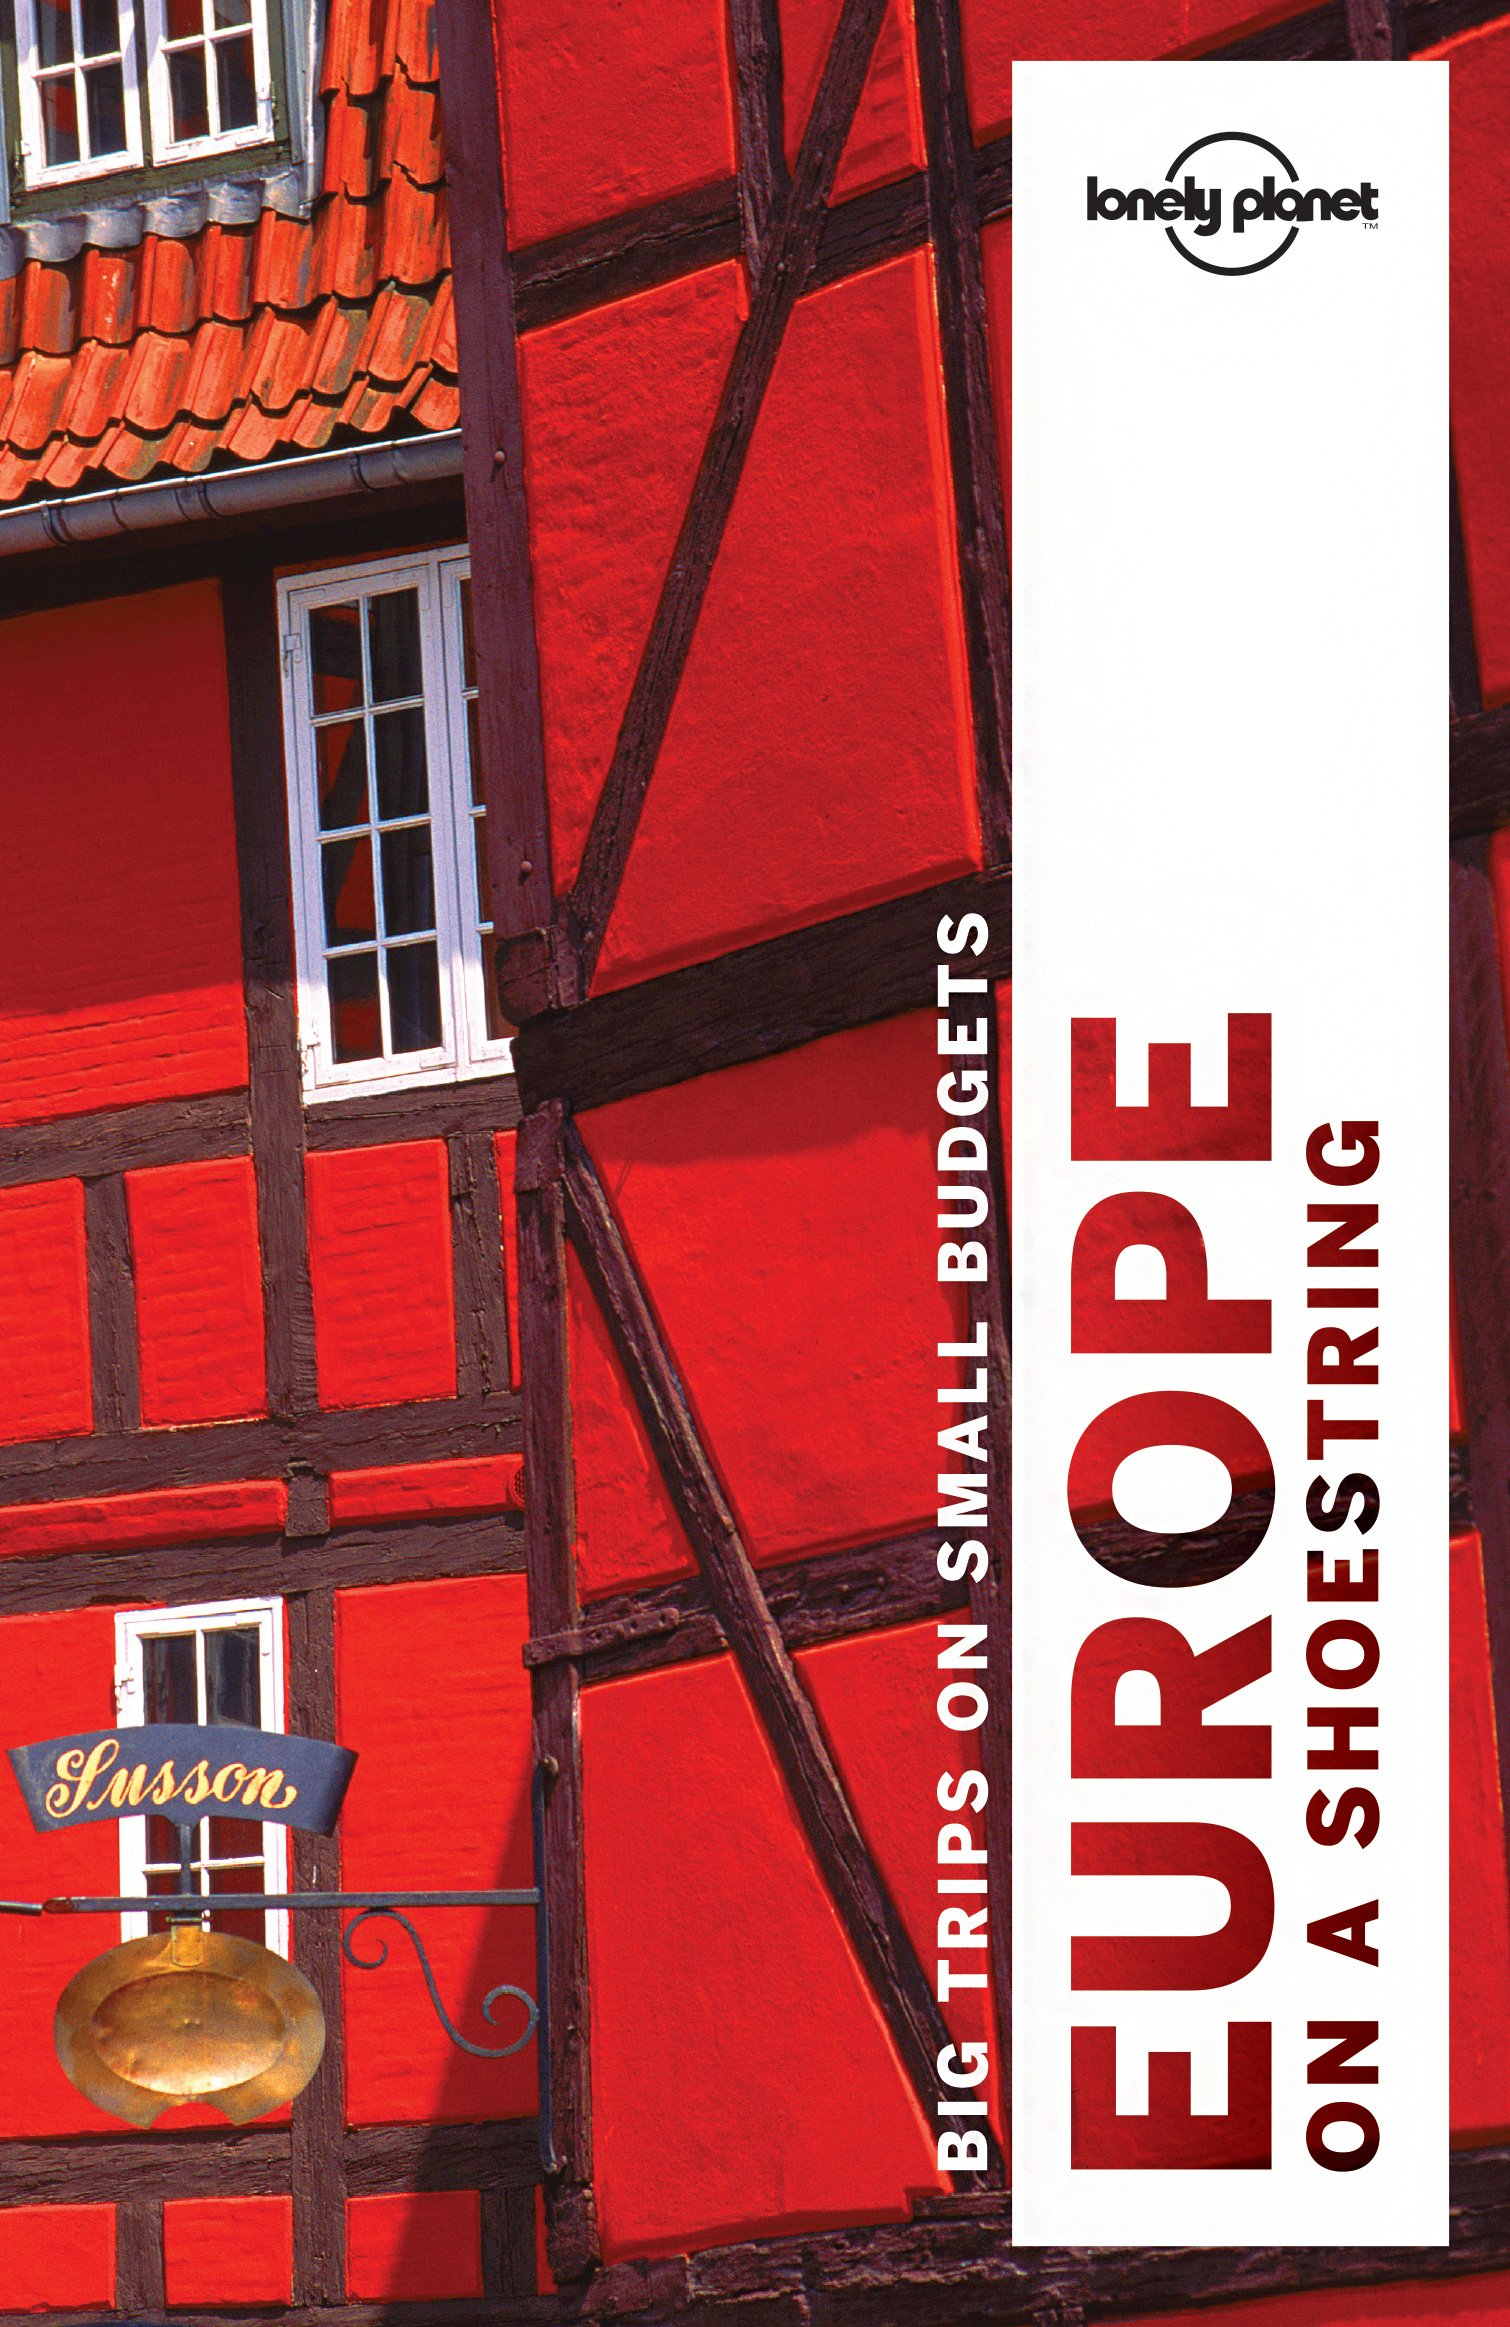 Lonely Planet Europe shoestring Travel